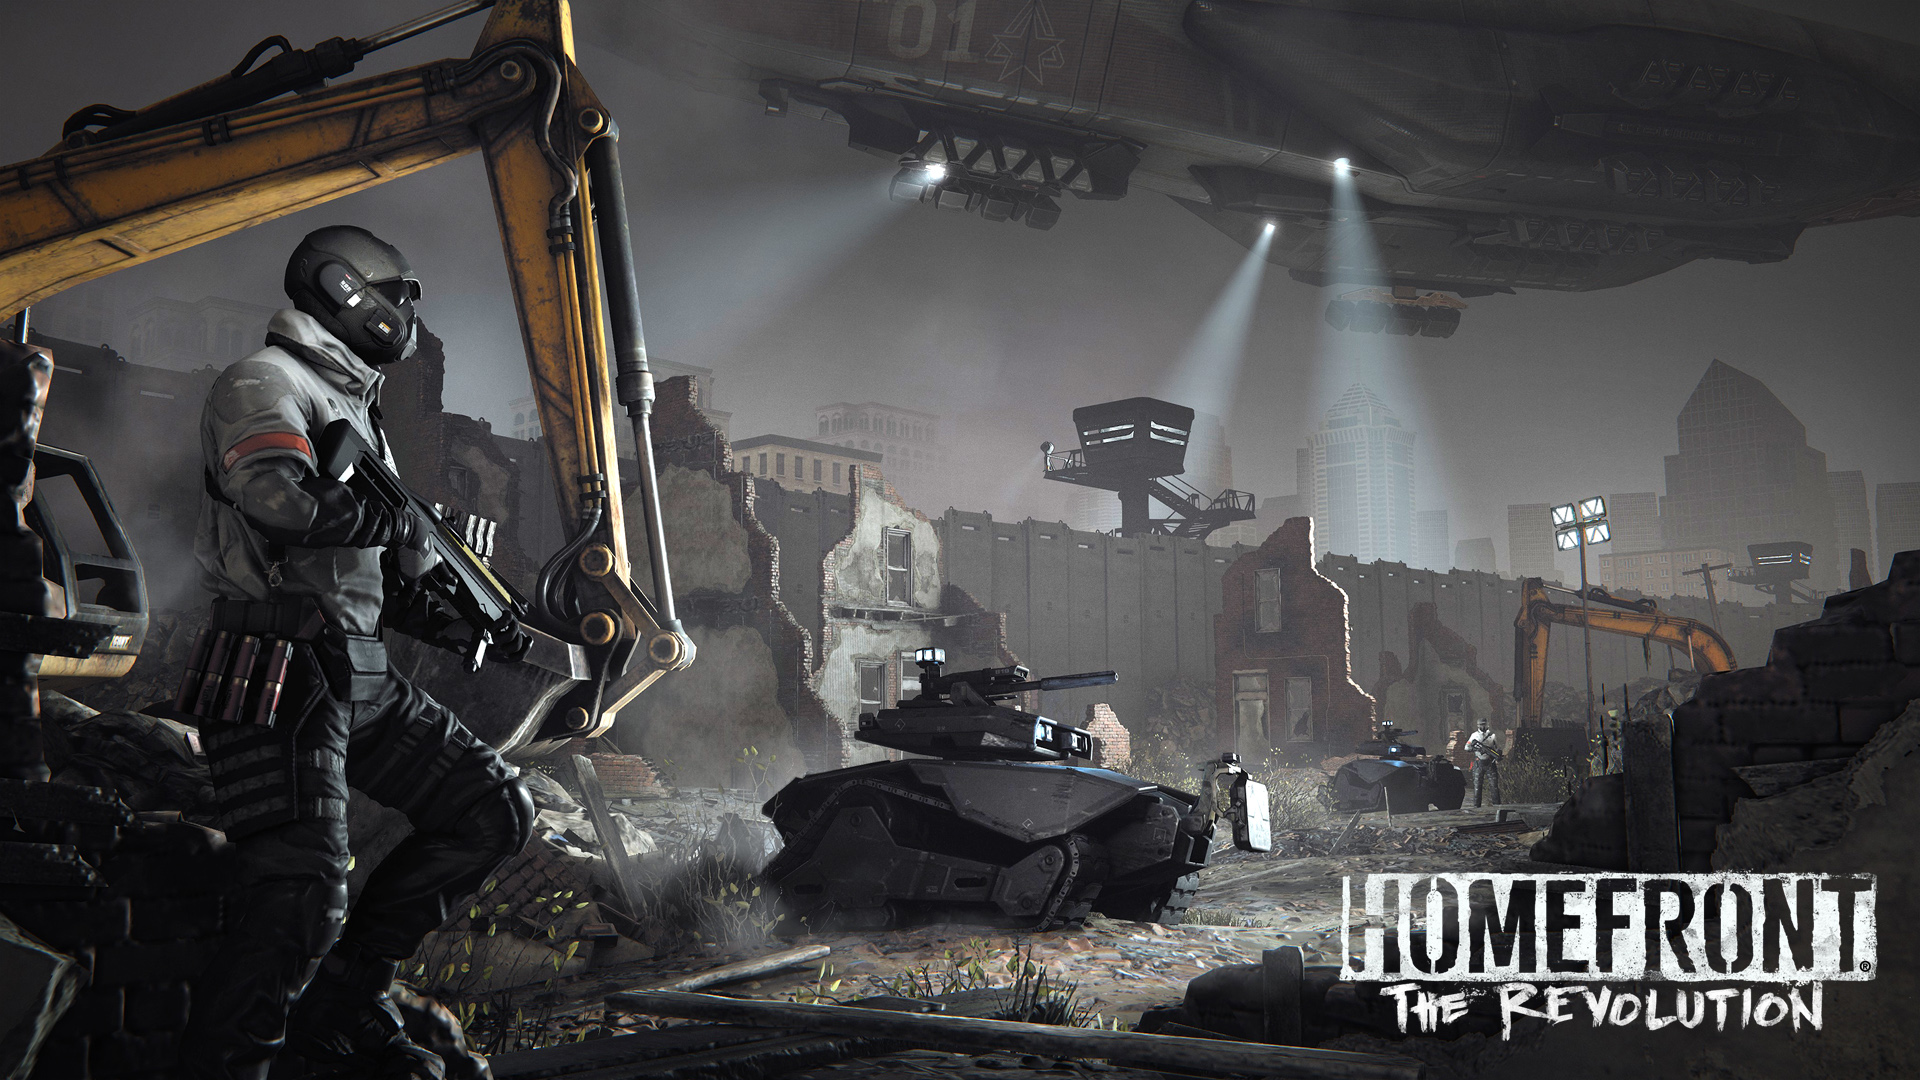 HD Wallpapers Homefront The Revolution Game